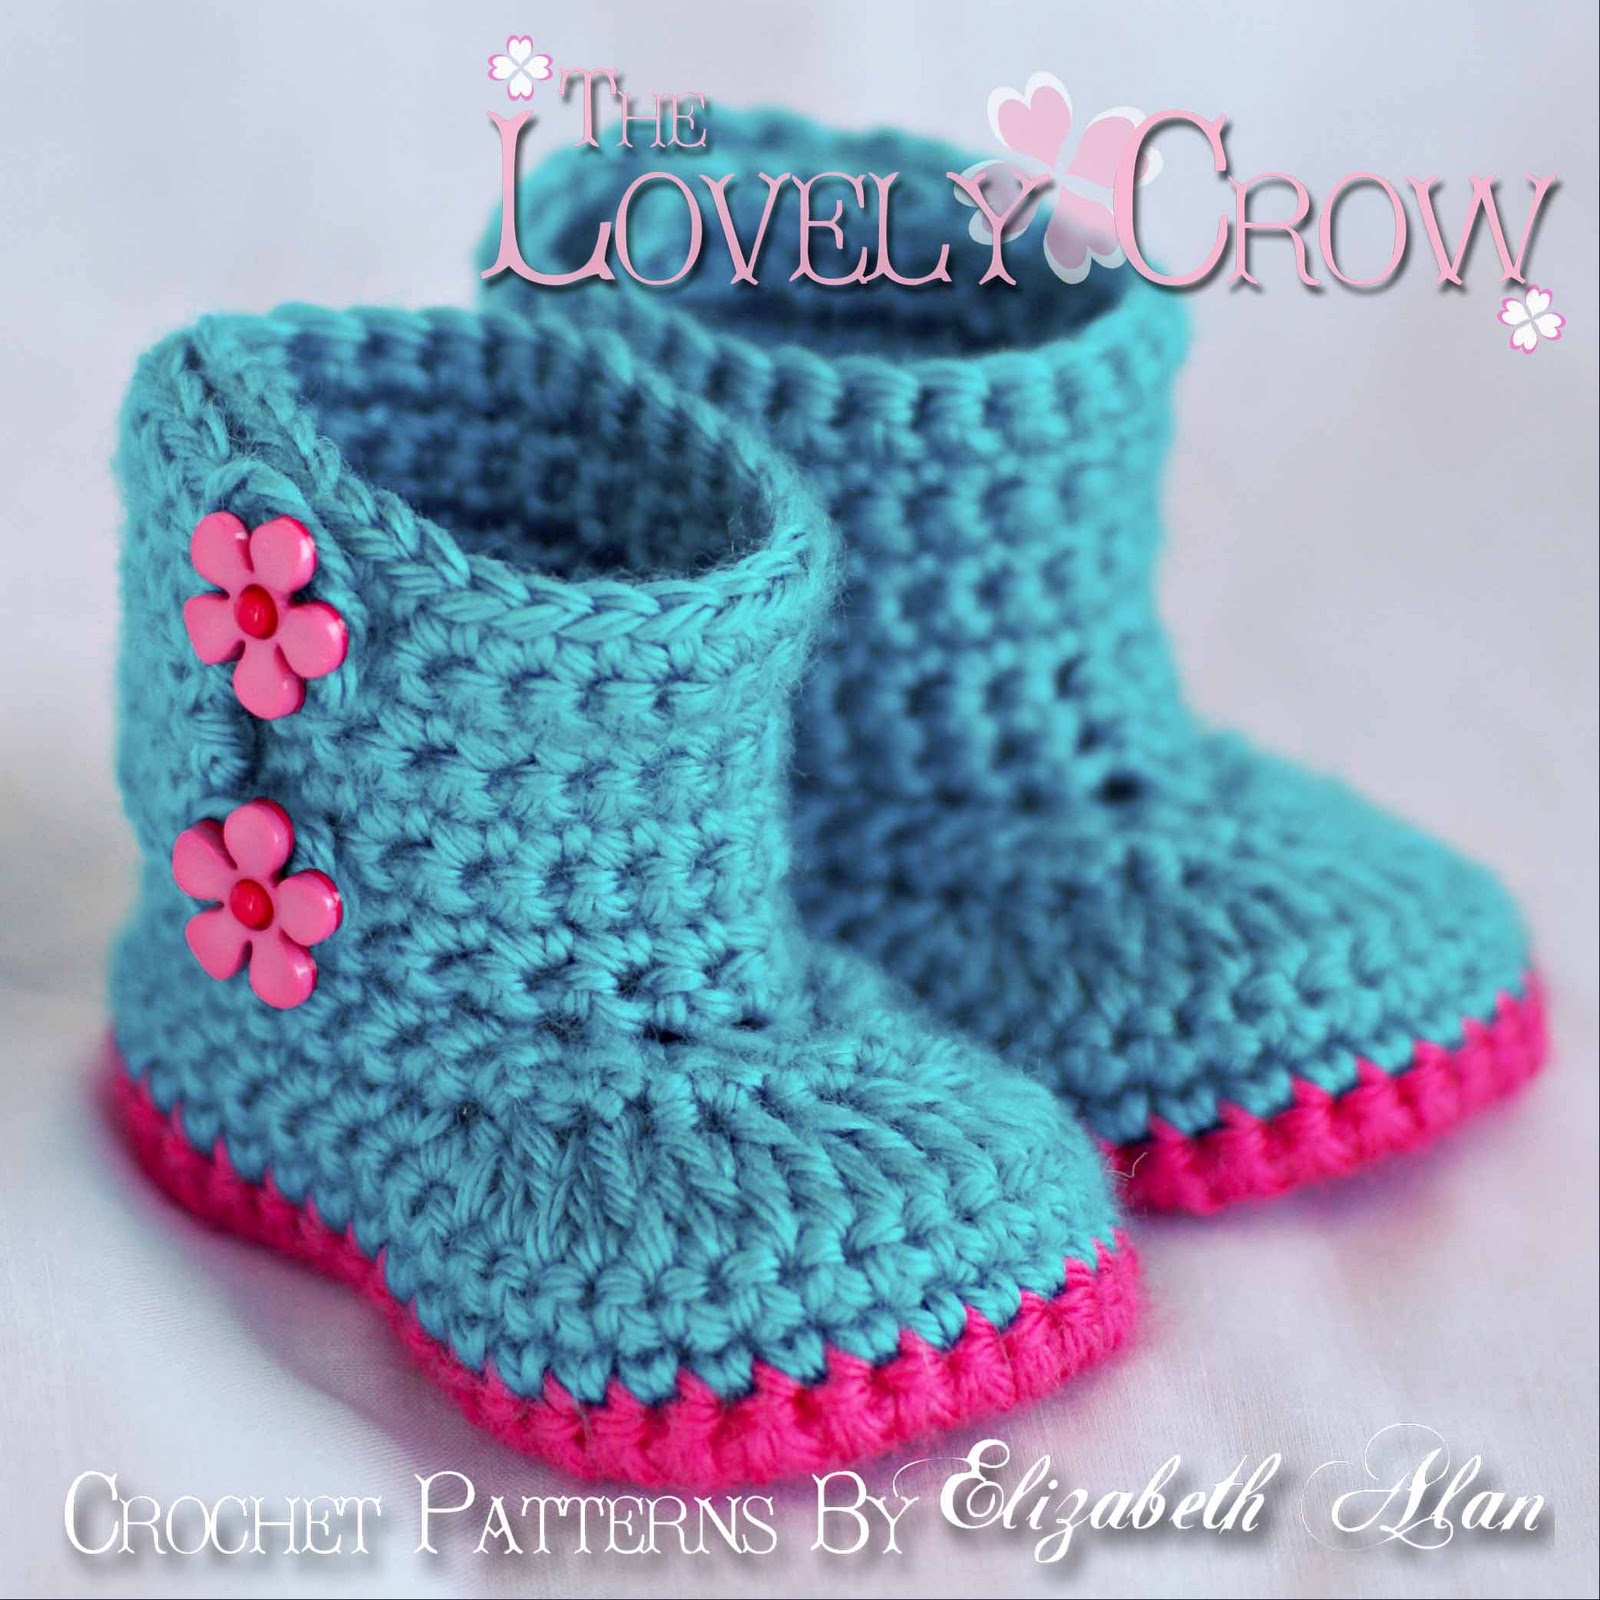 FREE CROCHET PATTERNS NOW Crochet Tutorials